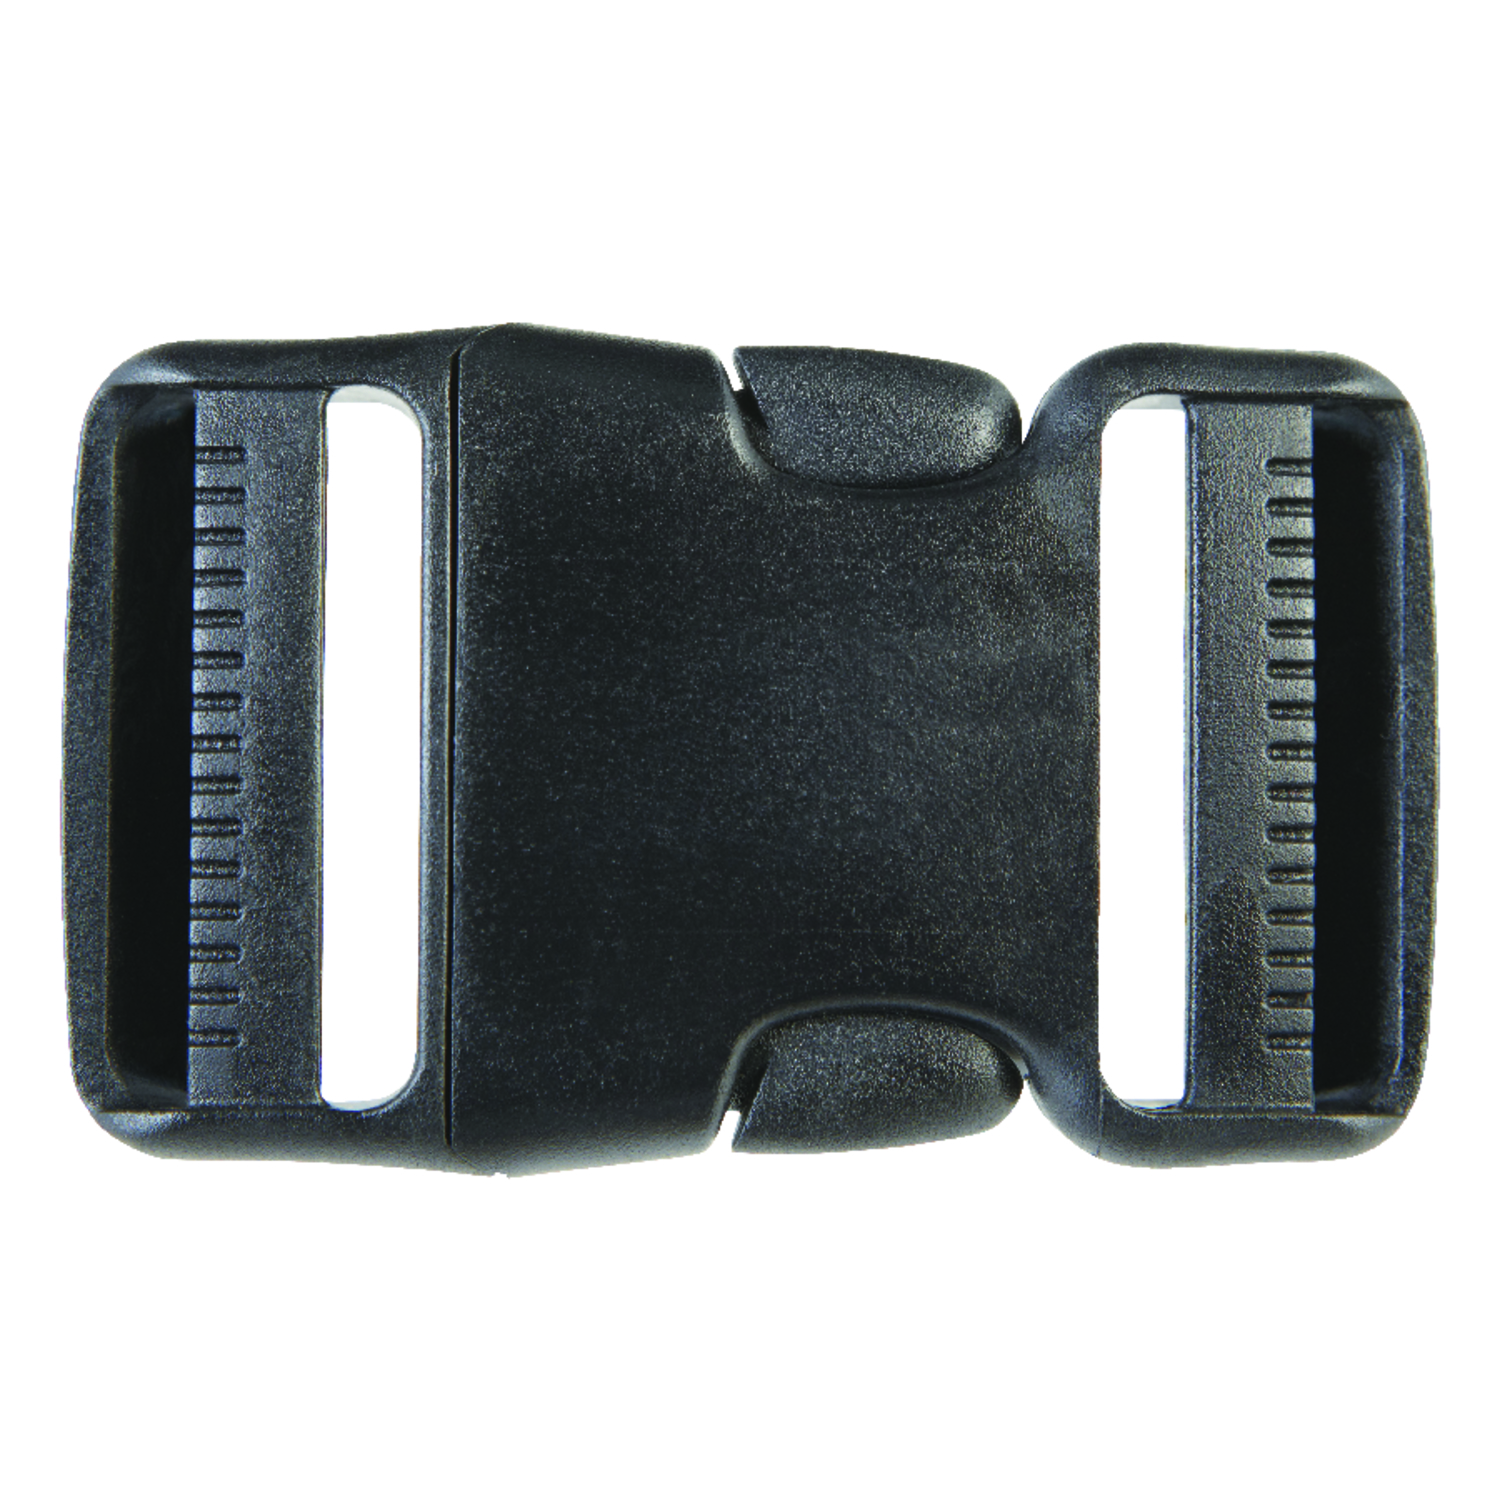 """48/"""" Lashing Straps with Side-Release Plastic Buckle Black s NEW 4"""